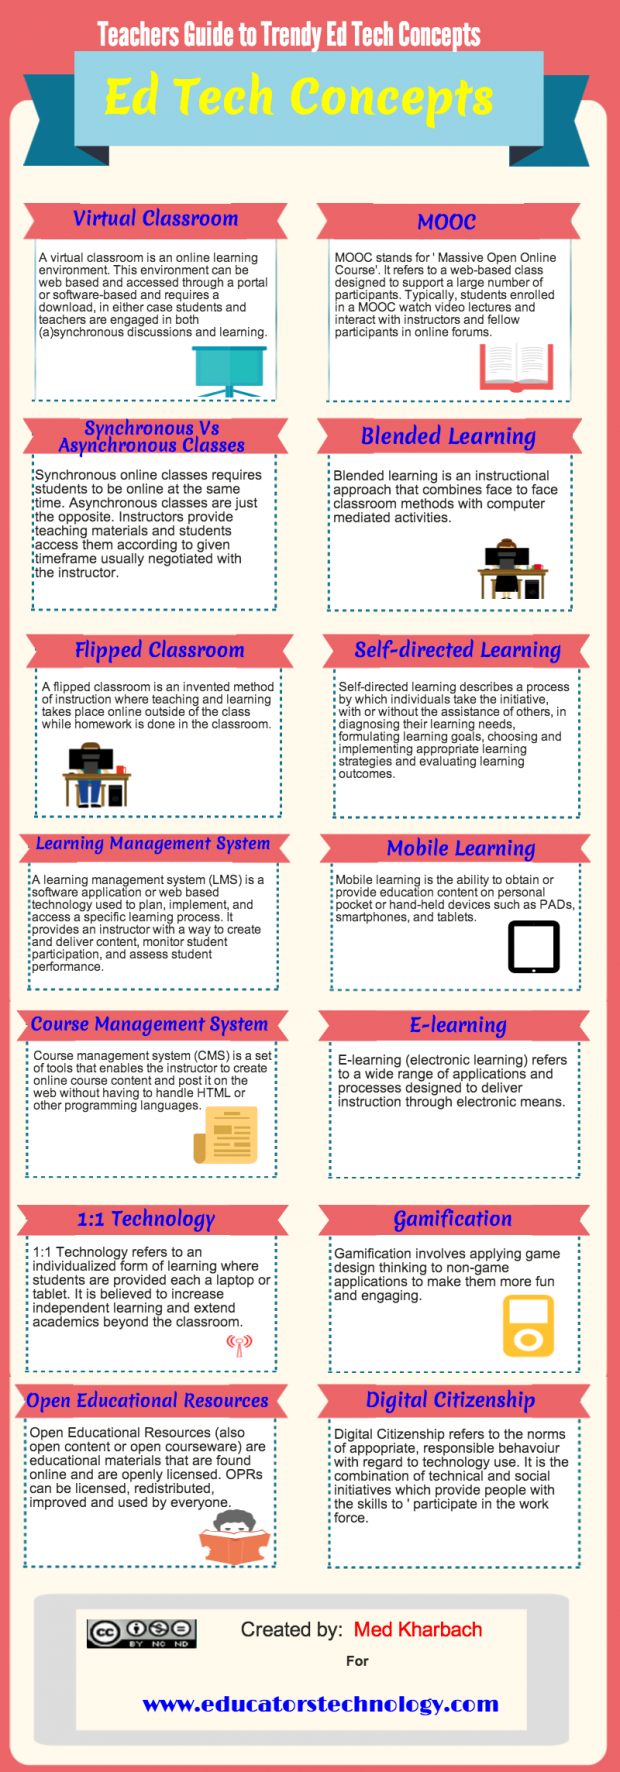 Teachers Guide To Trendy Edtech Concepts Infographic Educational Technology Learning Technology Teacher Tech